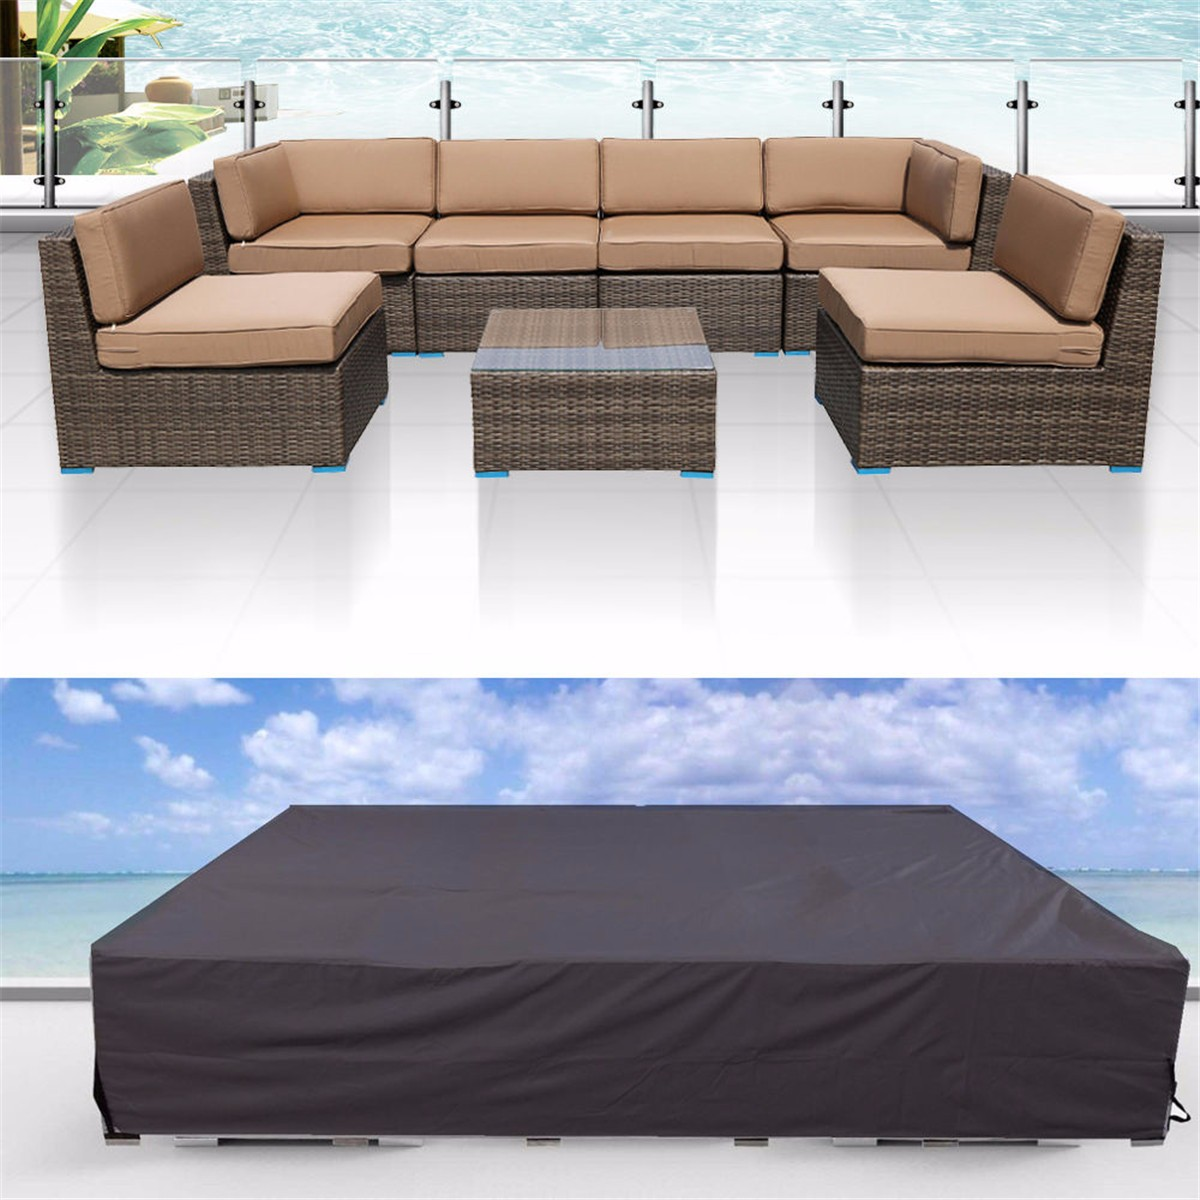 2 size black polyester pvc waterproof sofa couch table. Black Bedroom Furniture Sets. Home Design Ideas